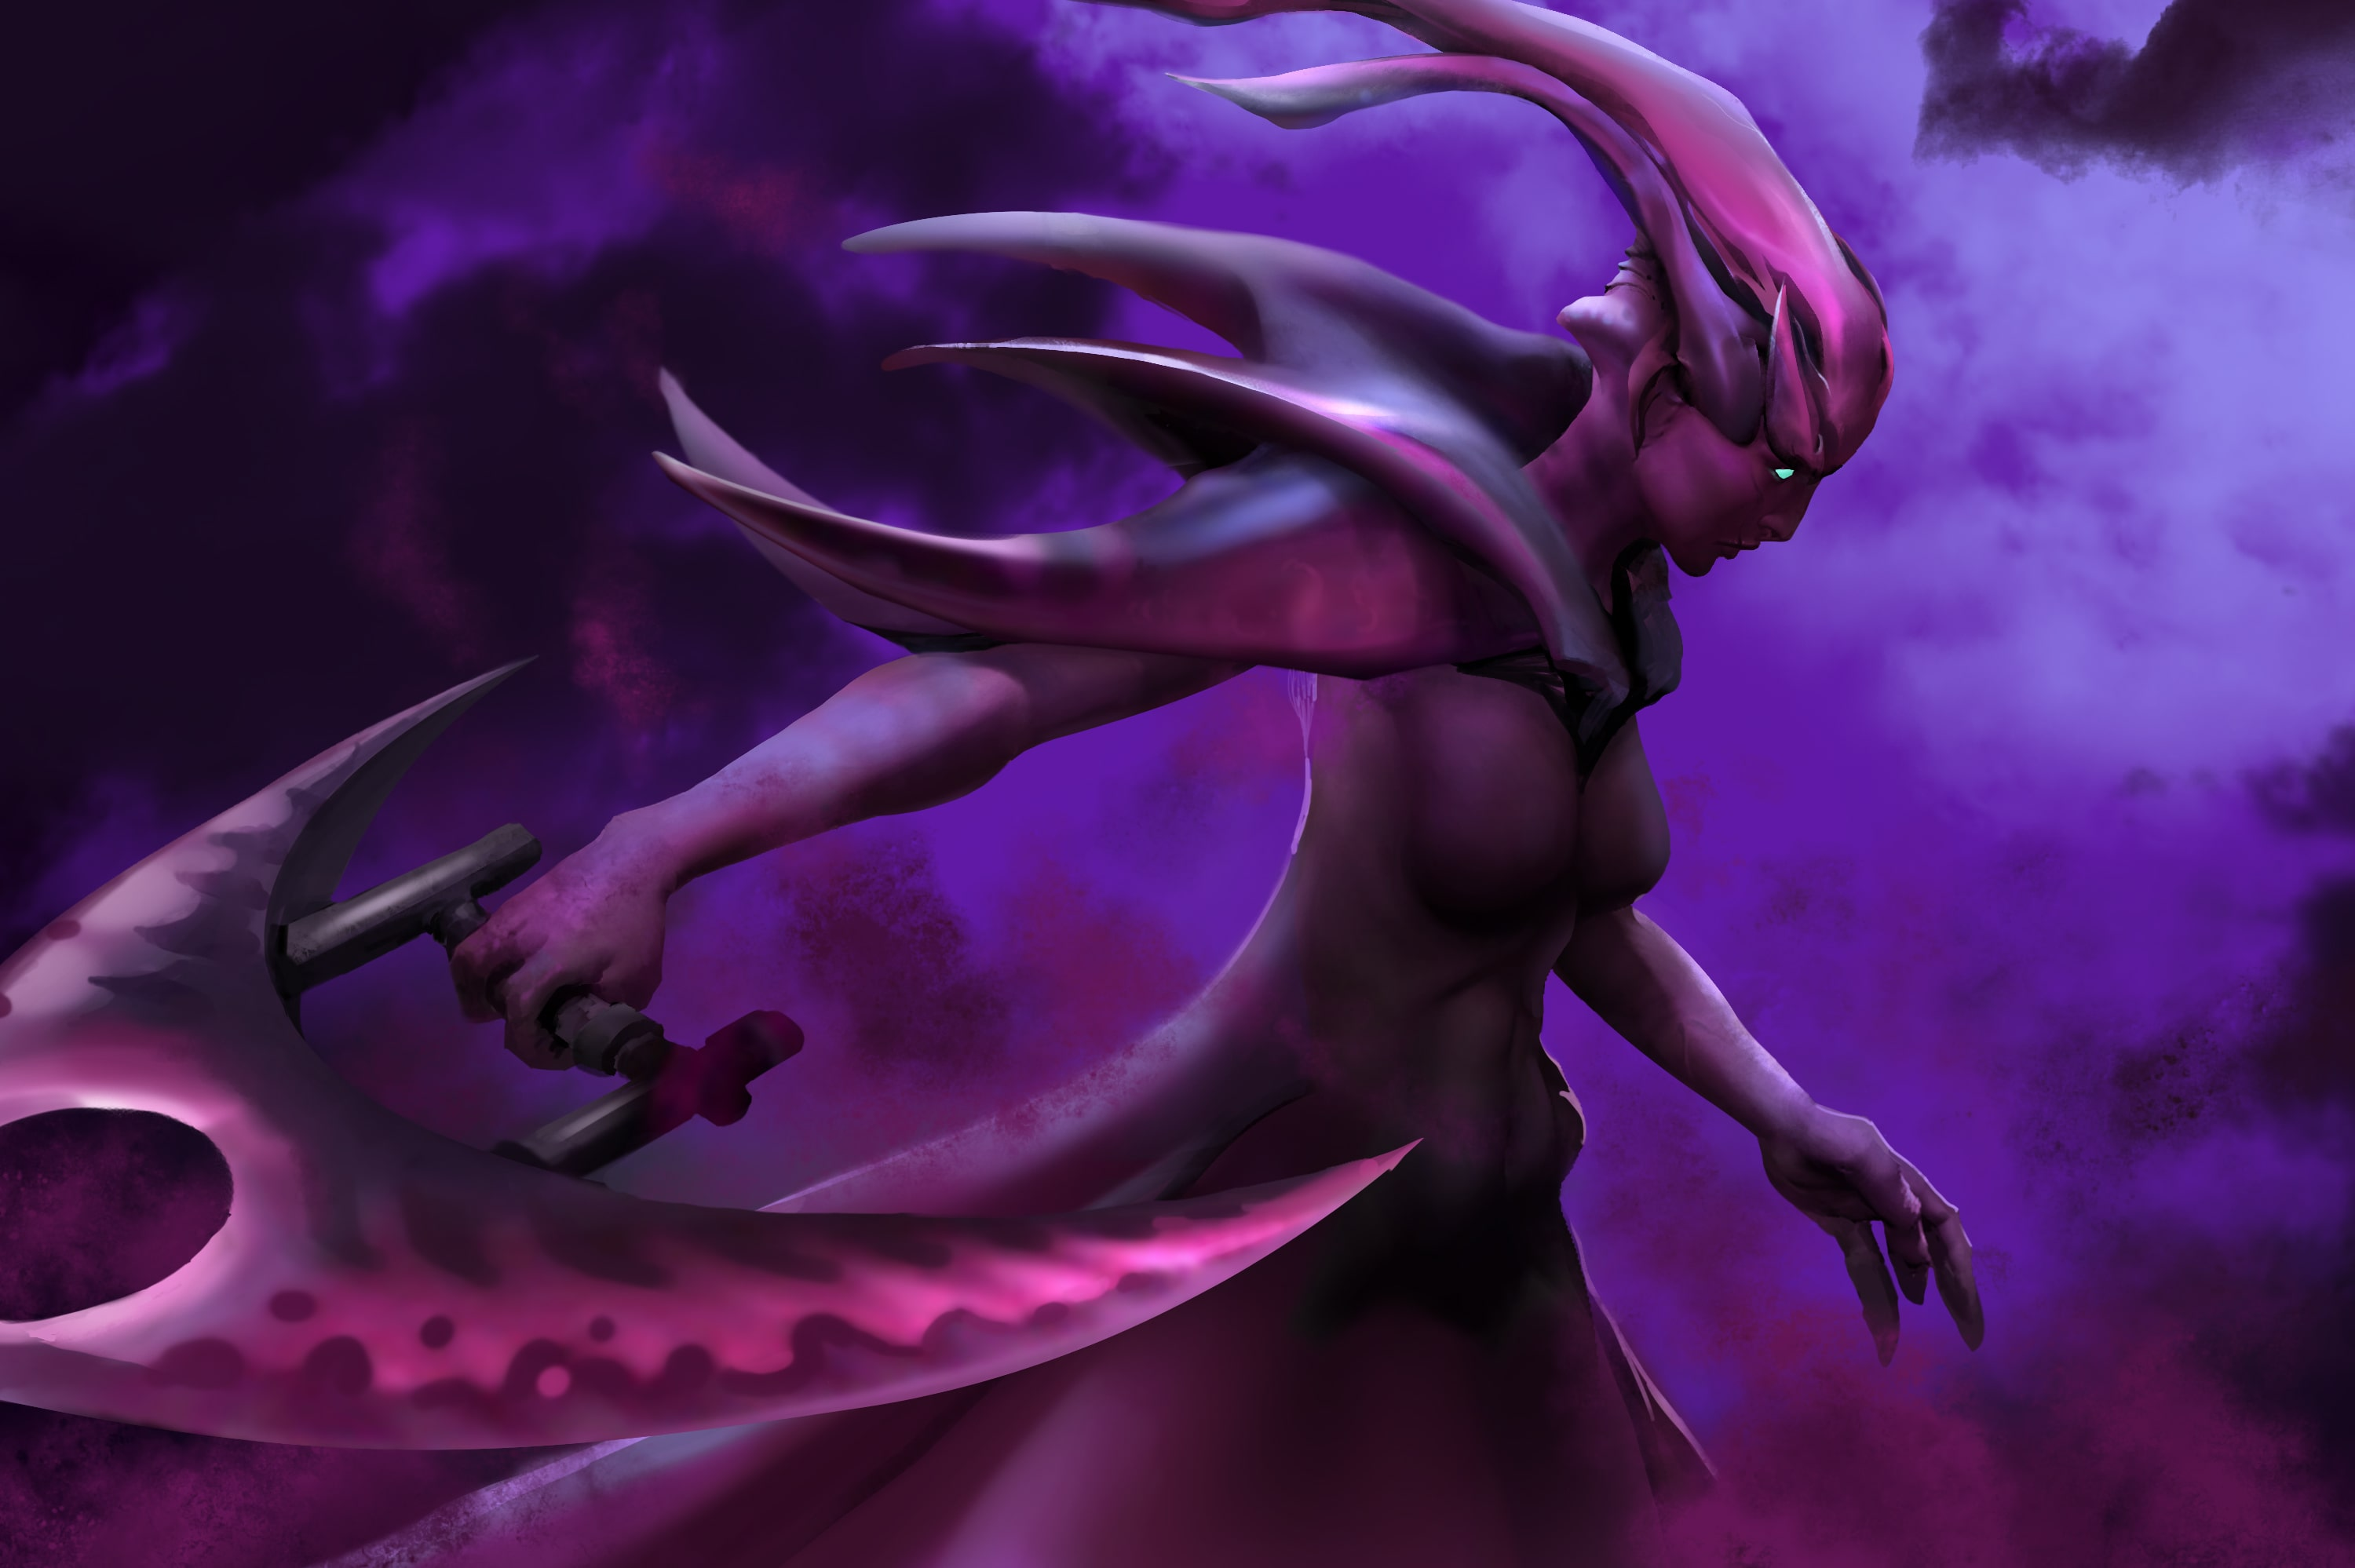 dota2 spectre hd desktop wallpapers 7wallpapers net